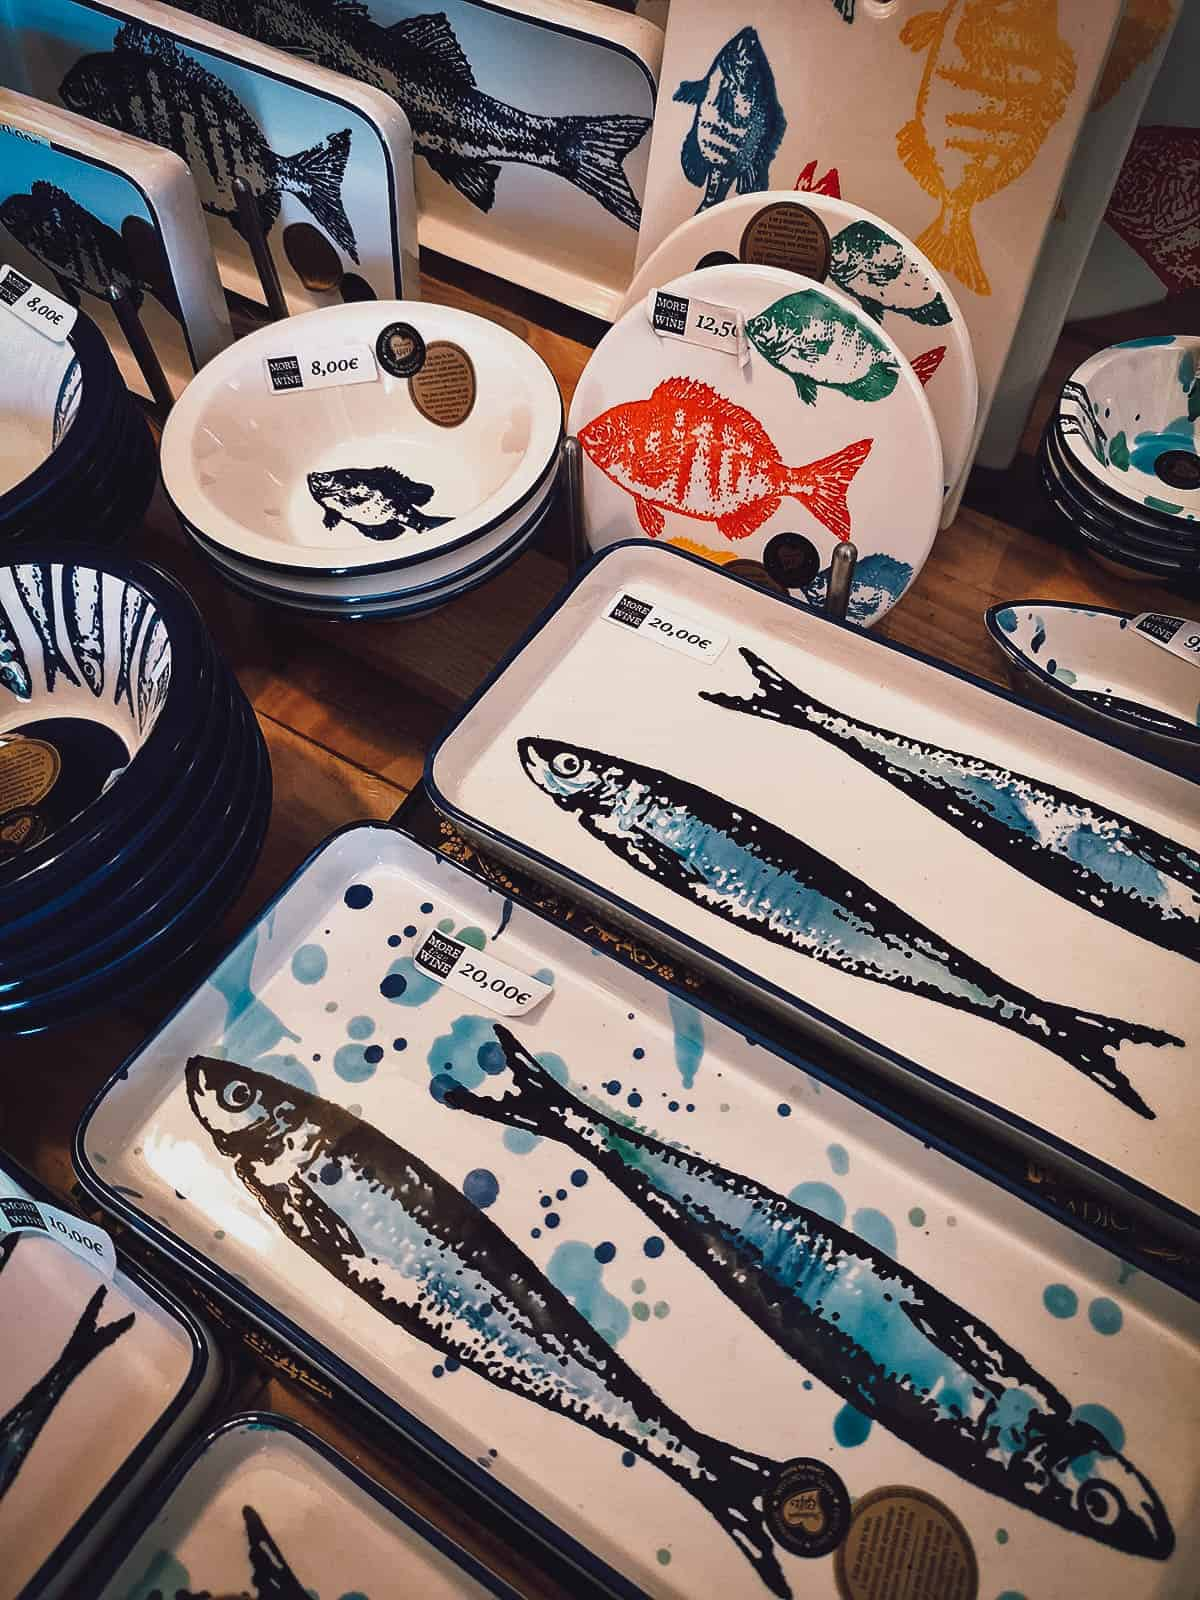 Plates, bowls, and trays with fish designs